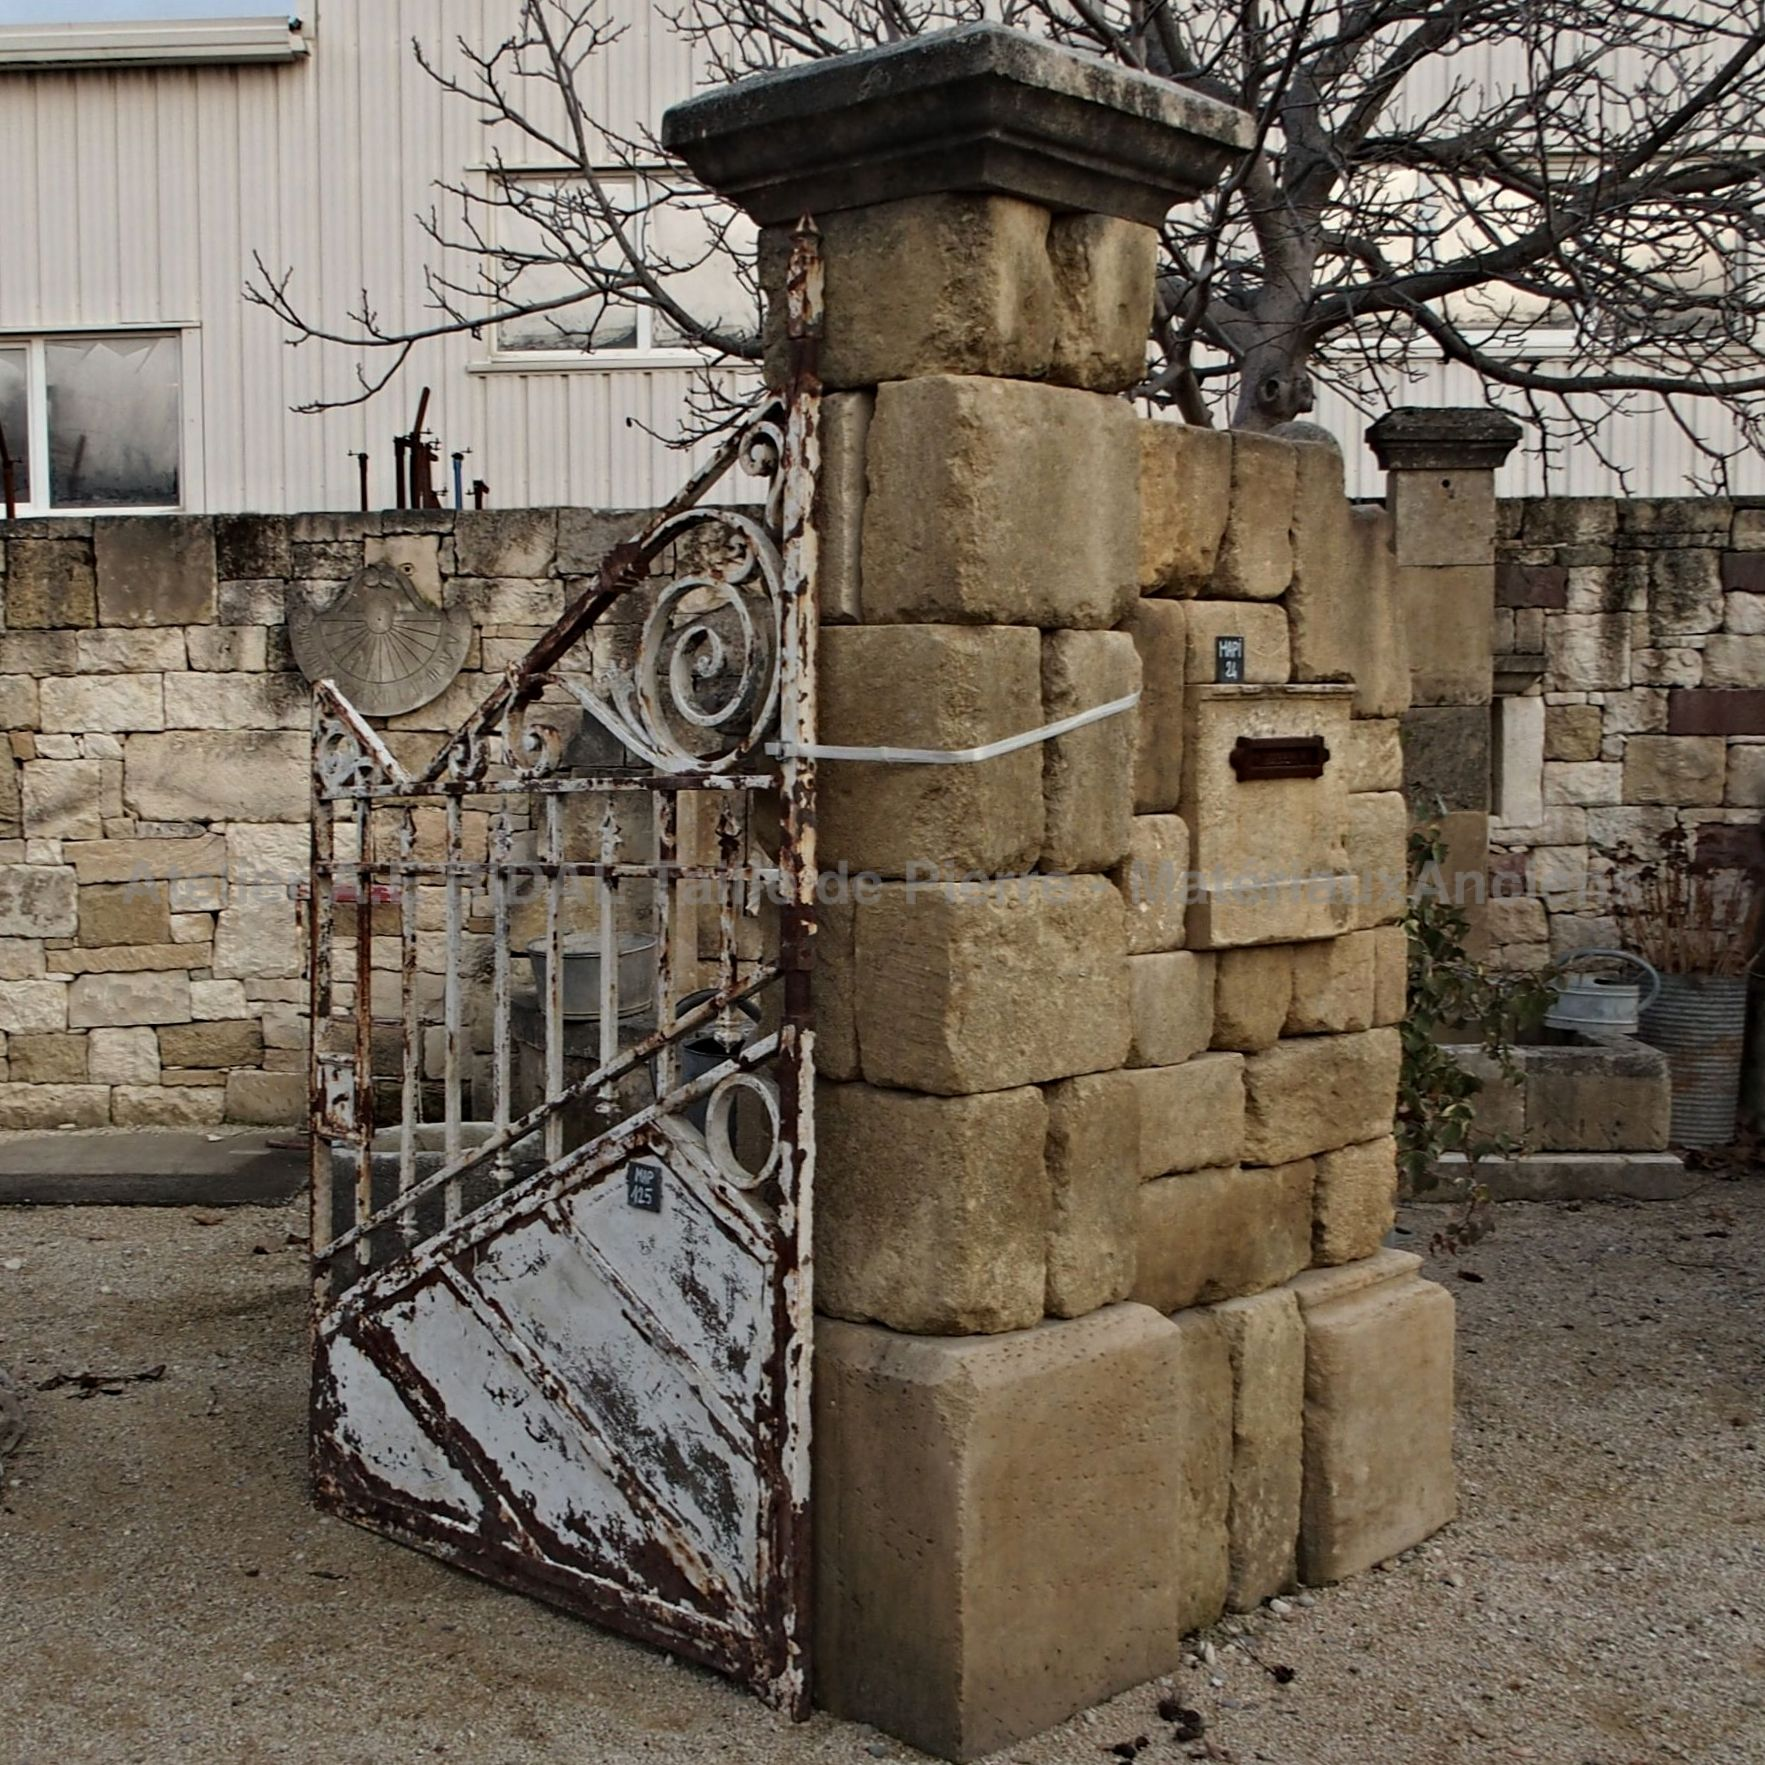 Wonderful antique wrought iron gates with a white color and a beautiful patina